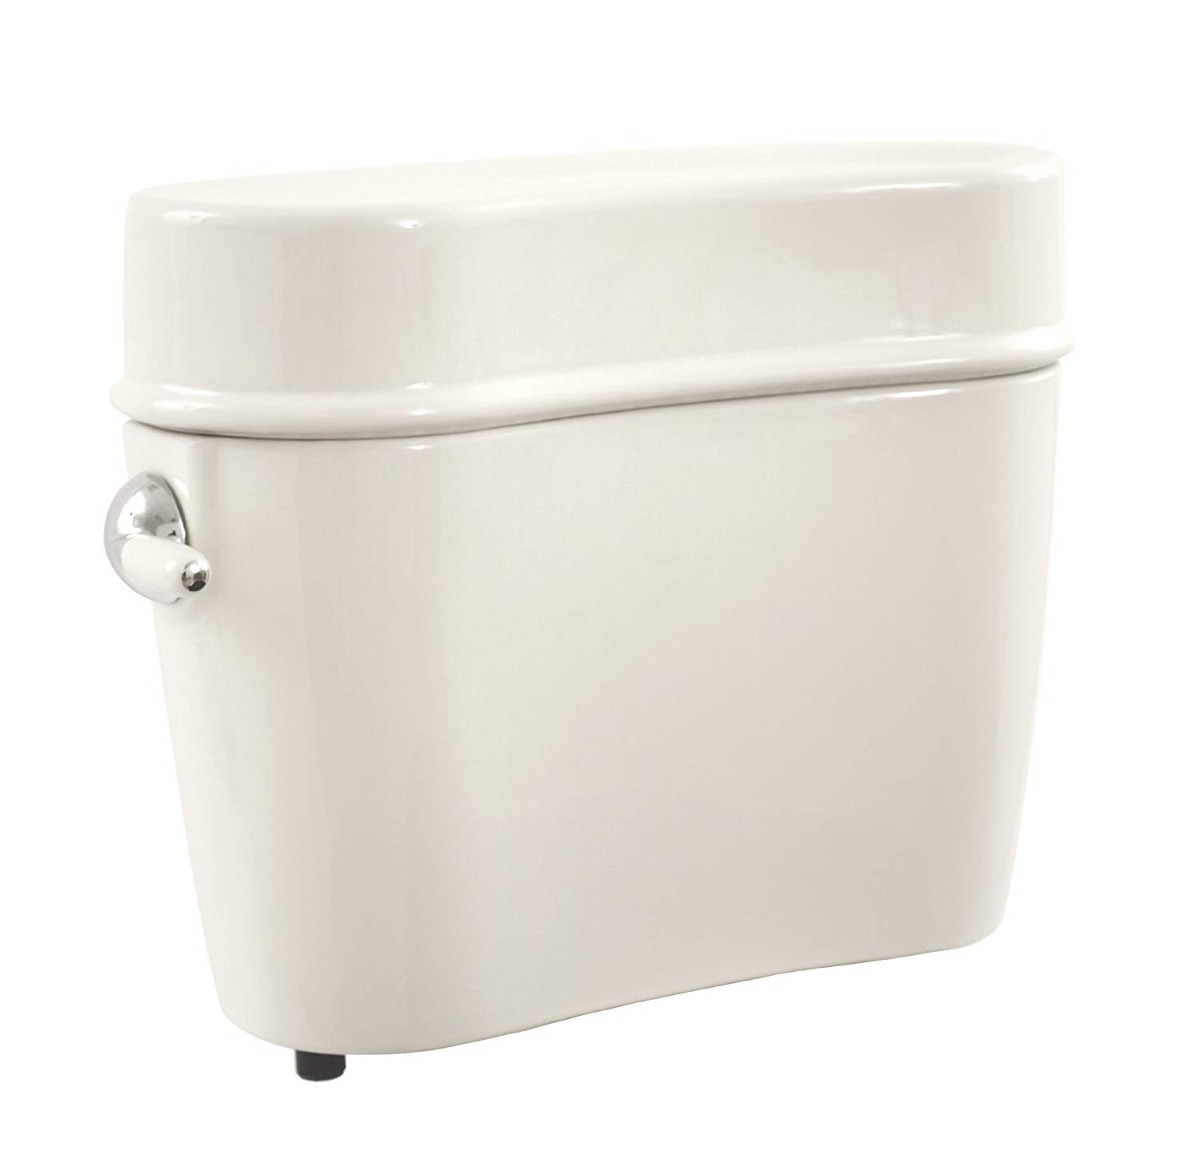 Toto St755s-01 Mercer Tank With G-max Flushing System, Cotto ...